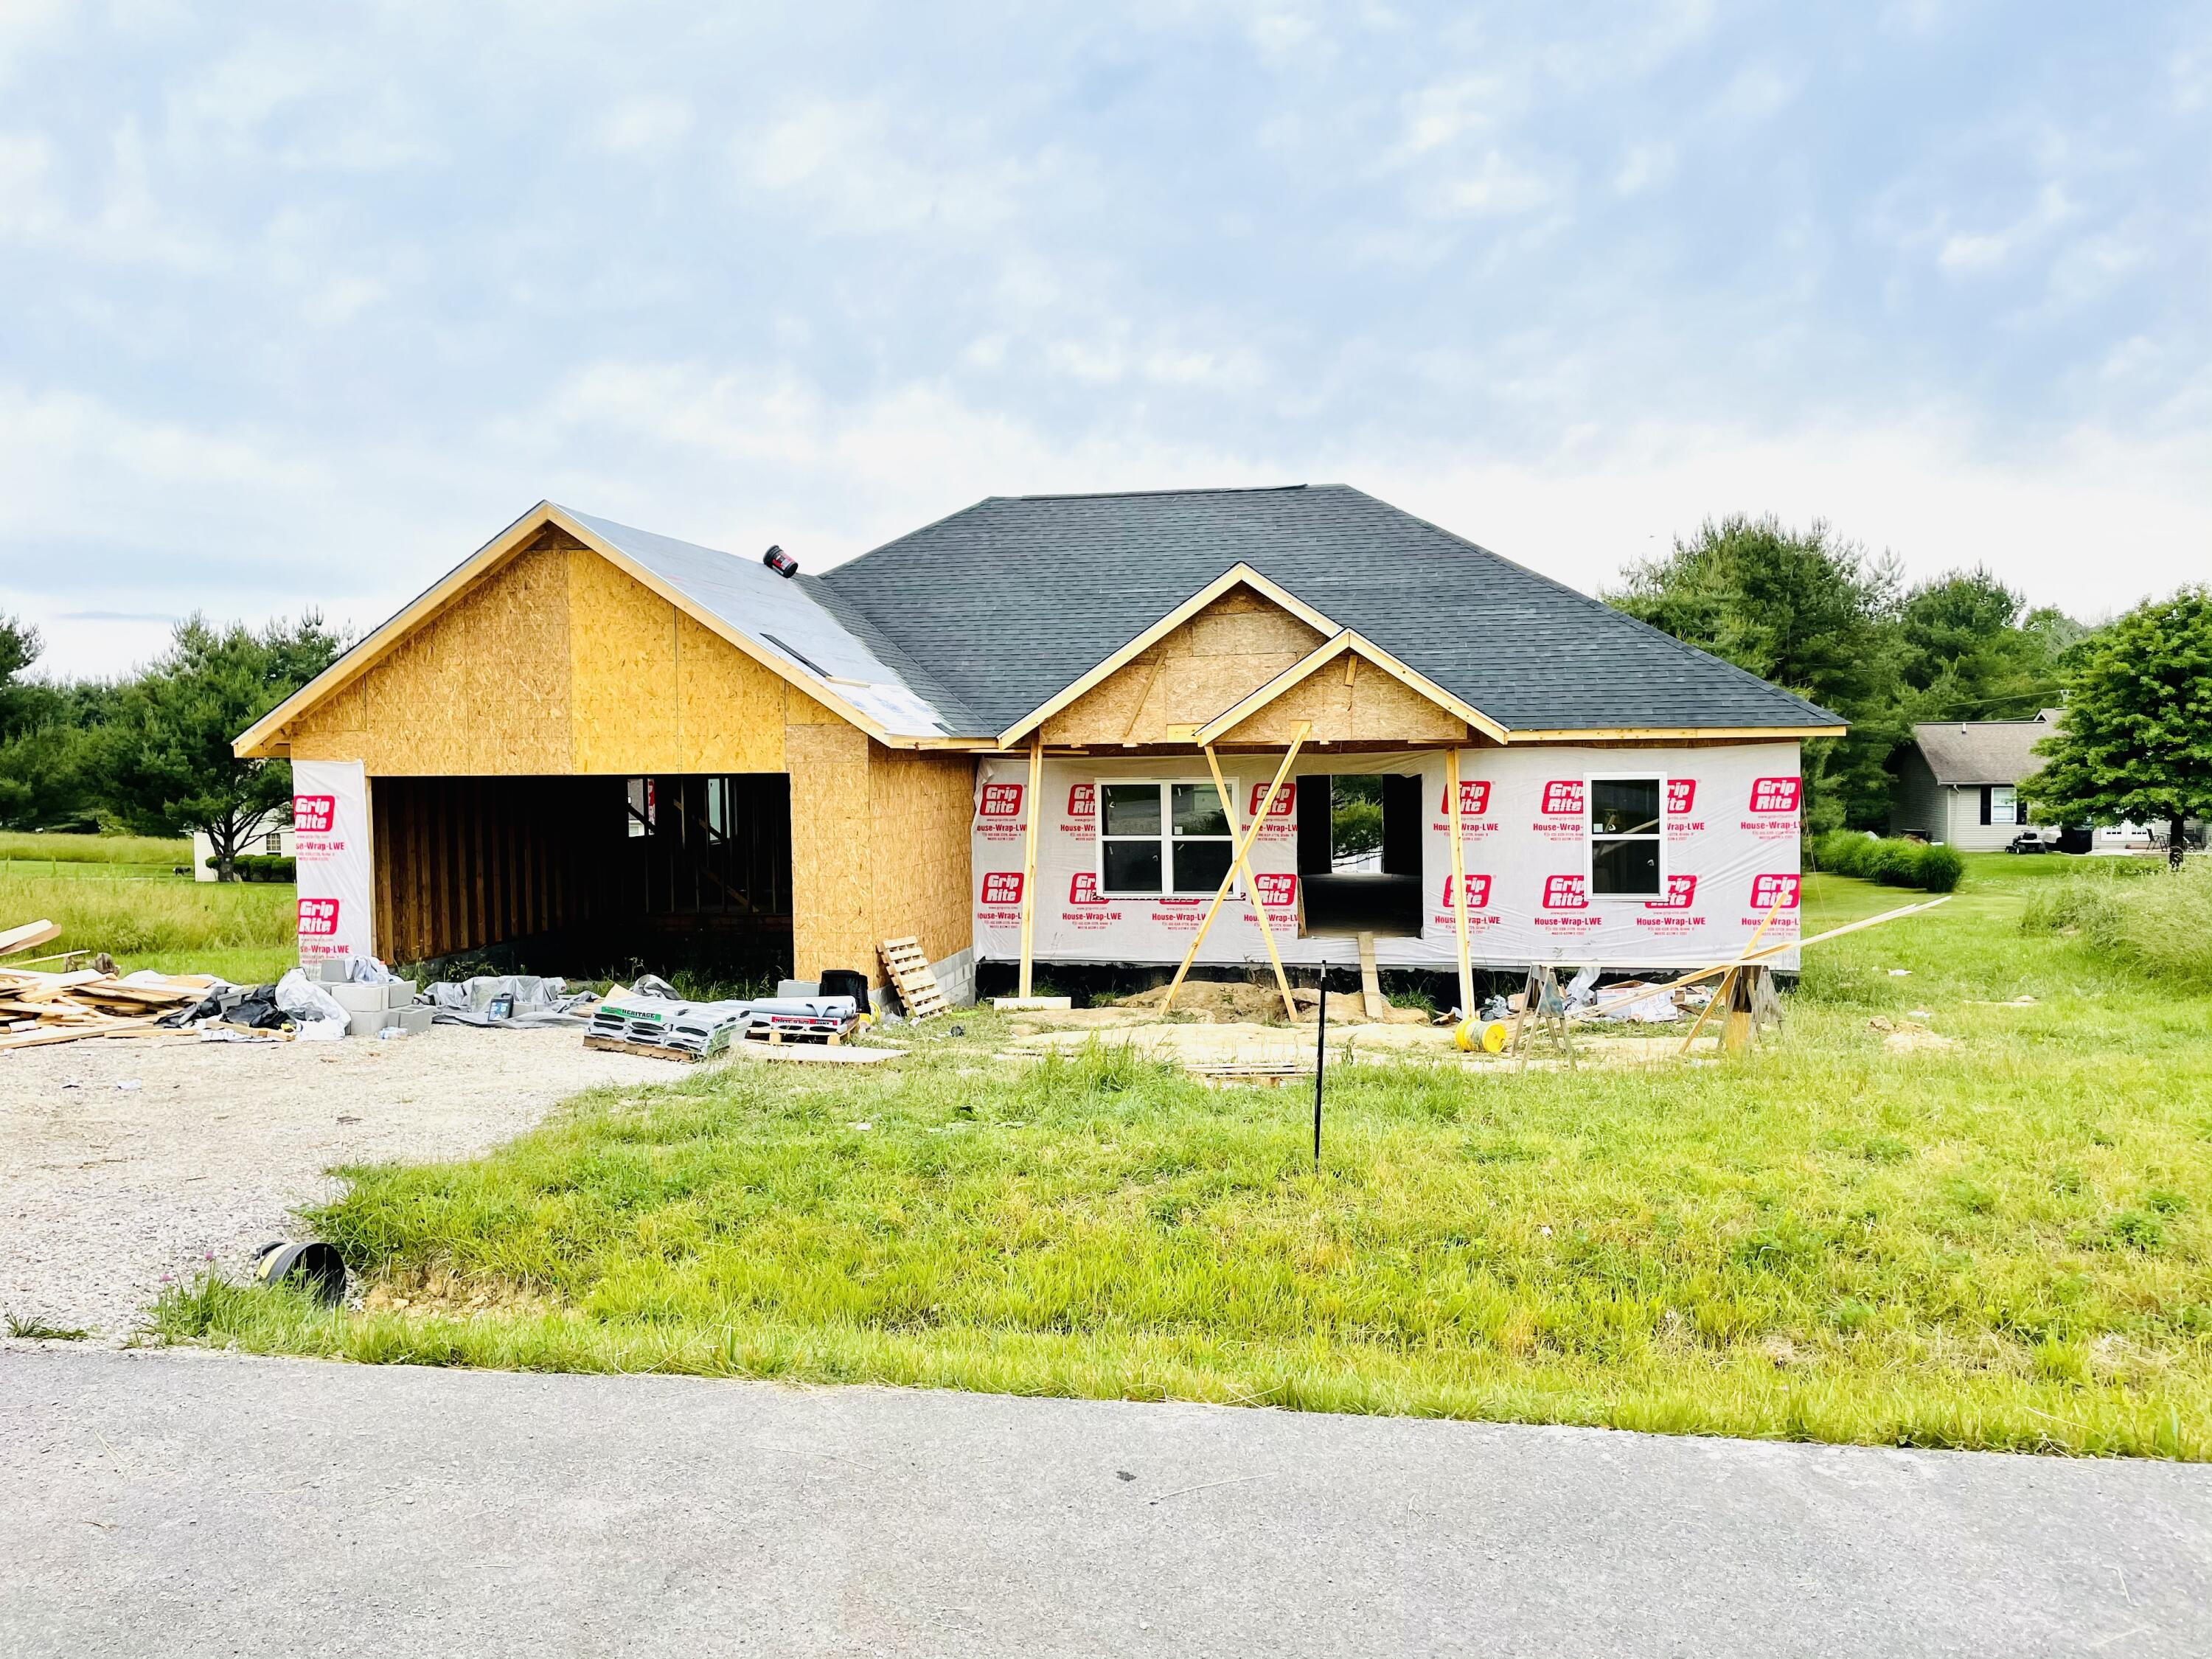 42 Summerhill Drive, Science Hill, KY 42553